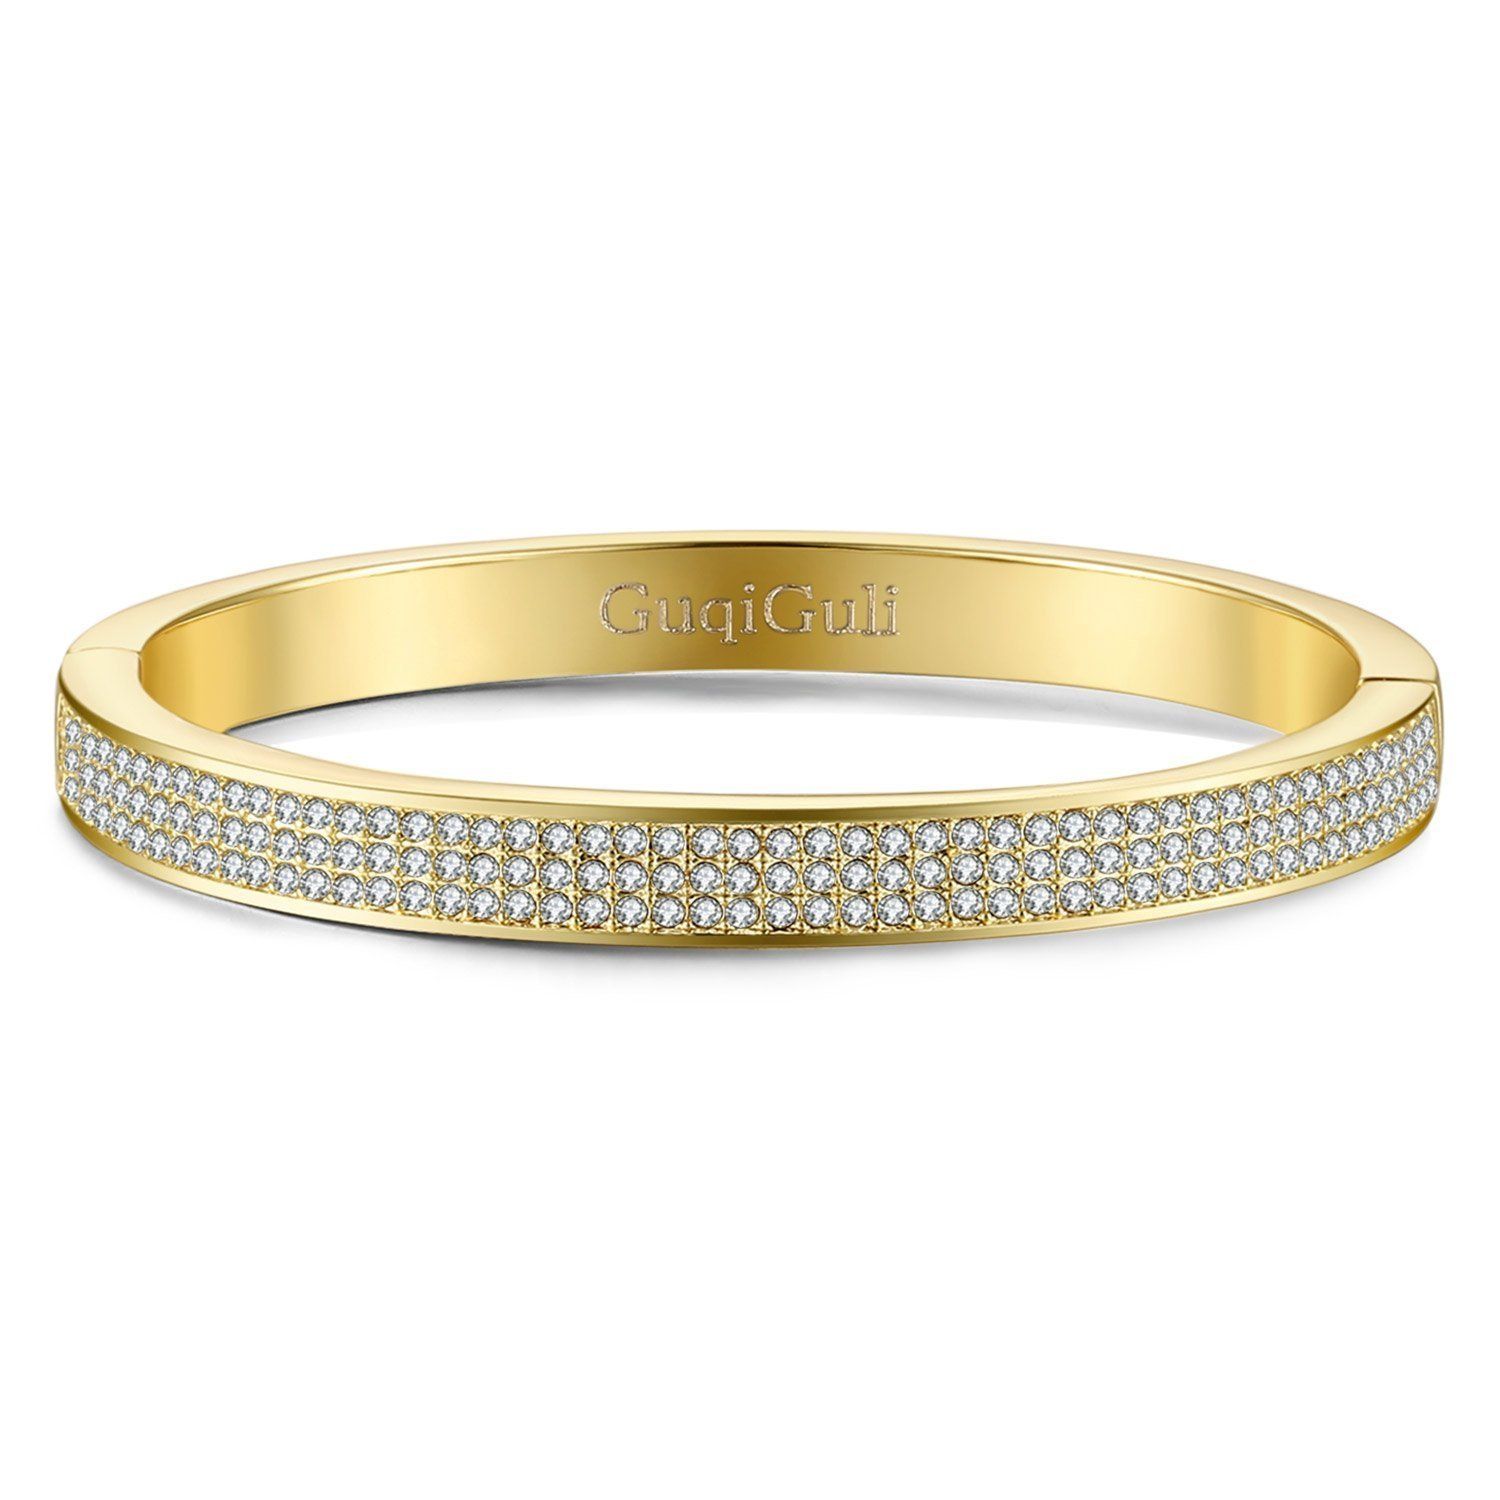 GuqiGuli Swarovski Elements Crystal Pave Oval 14K Gold-Tone Bangle Bracelet for Women, 7.4''